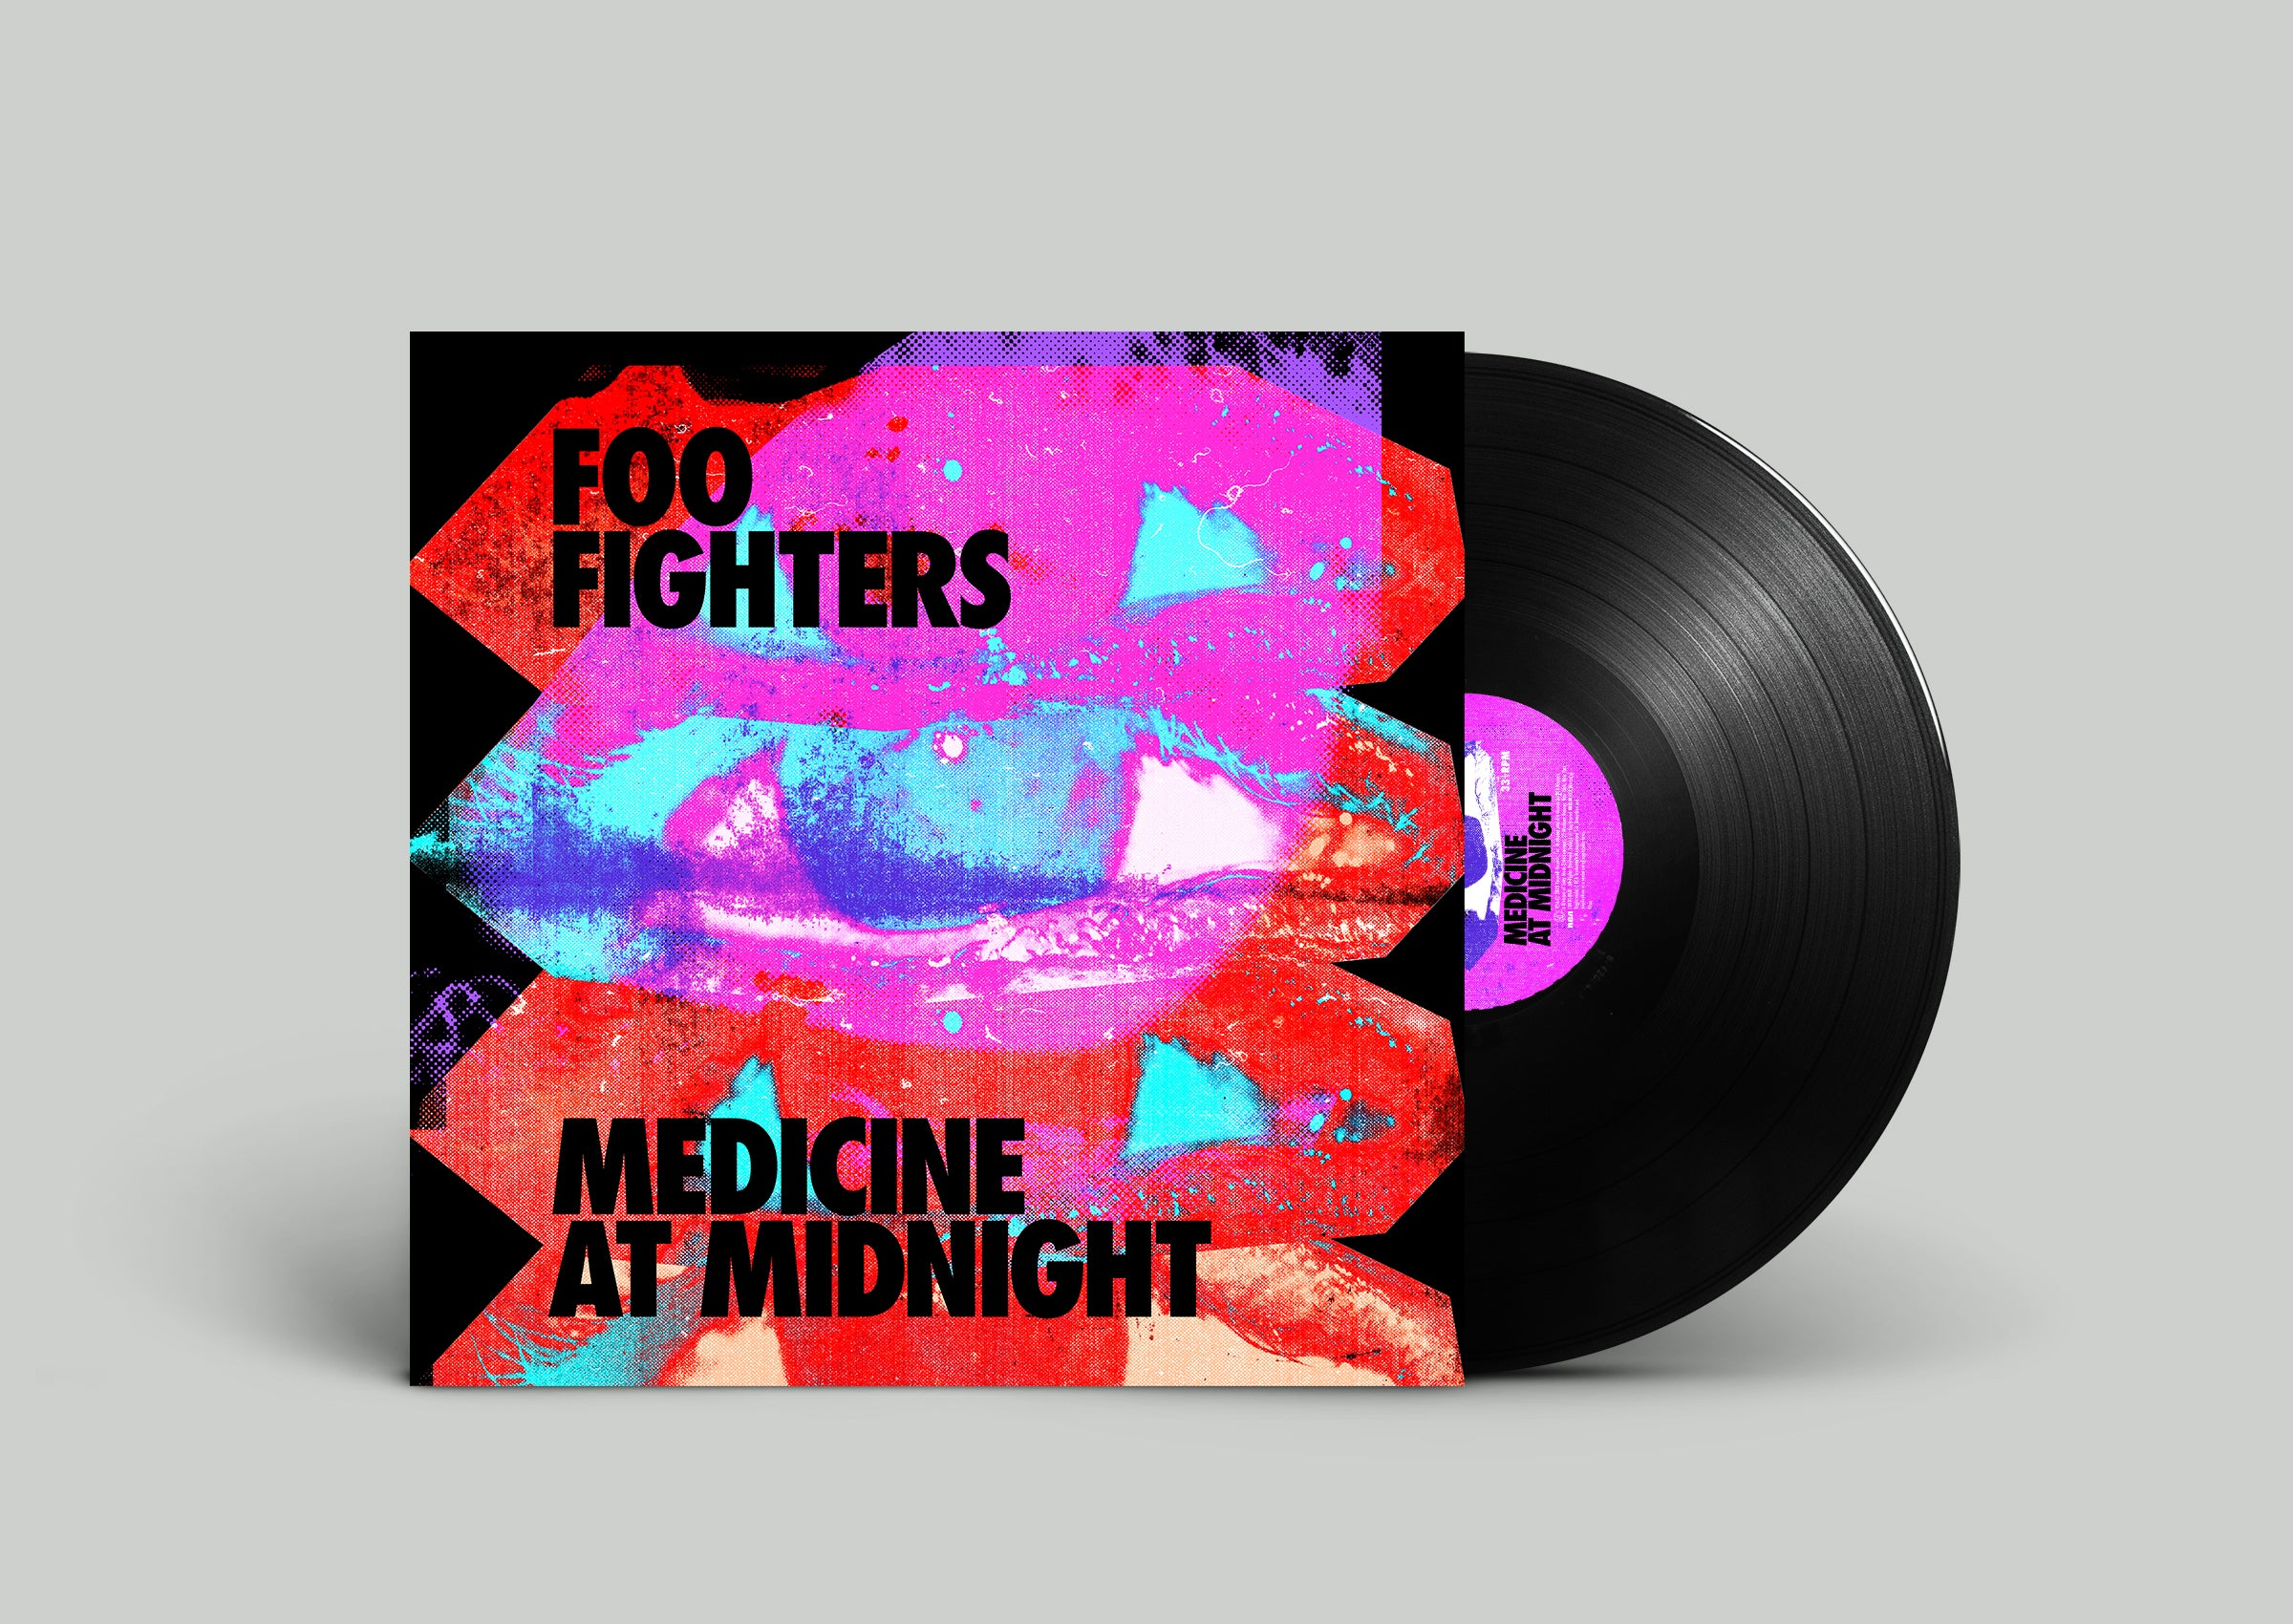 Foo Fighters - Medicine At Midnight [LP] (Black 140 Gram Vinyl, insert)